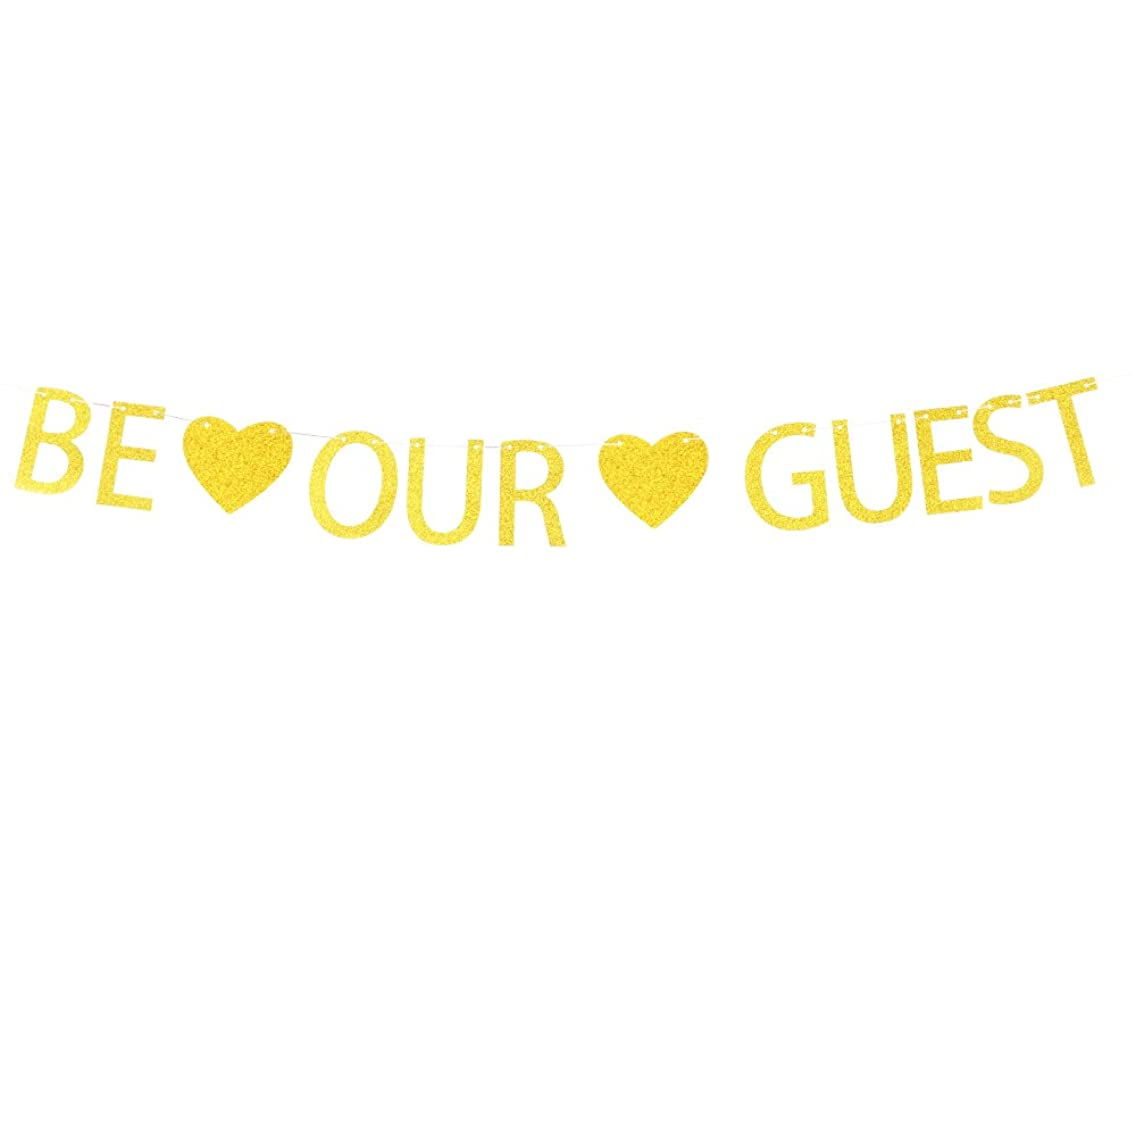 Be Our Guest Banner with Gold Glitter Heart Decorations Hanging Decor for Party Décor Gold Banner Pertlife